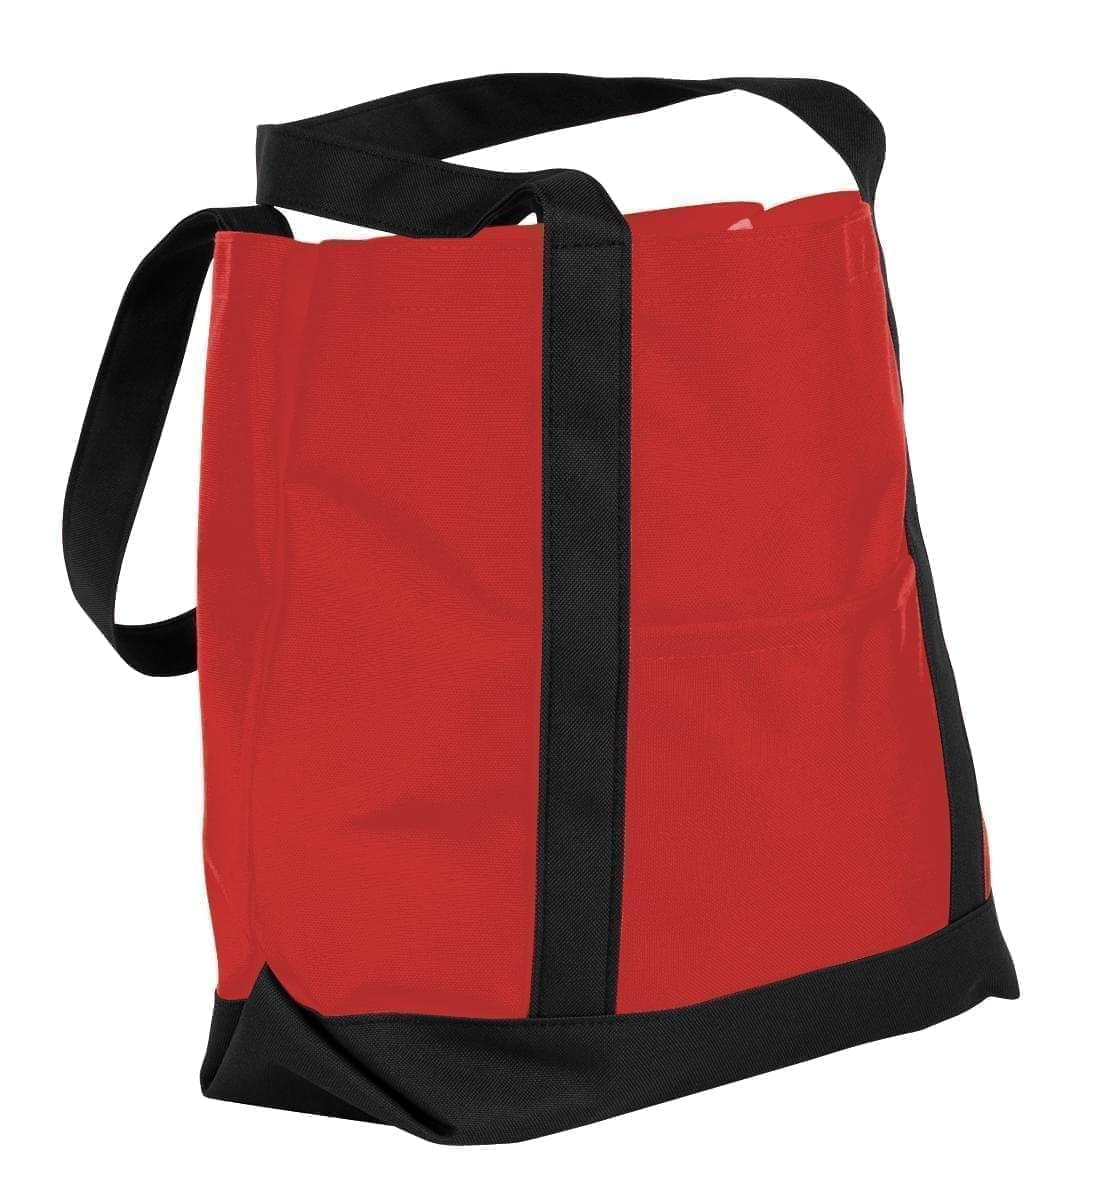 USA Made Canvas Fashion Tote Bags, Red-Black, XAACL1UAEC